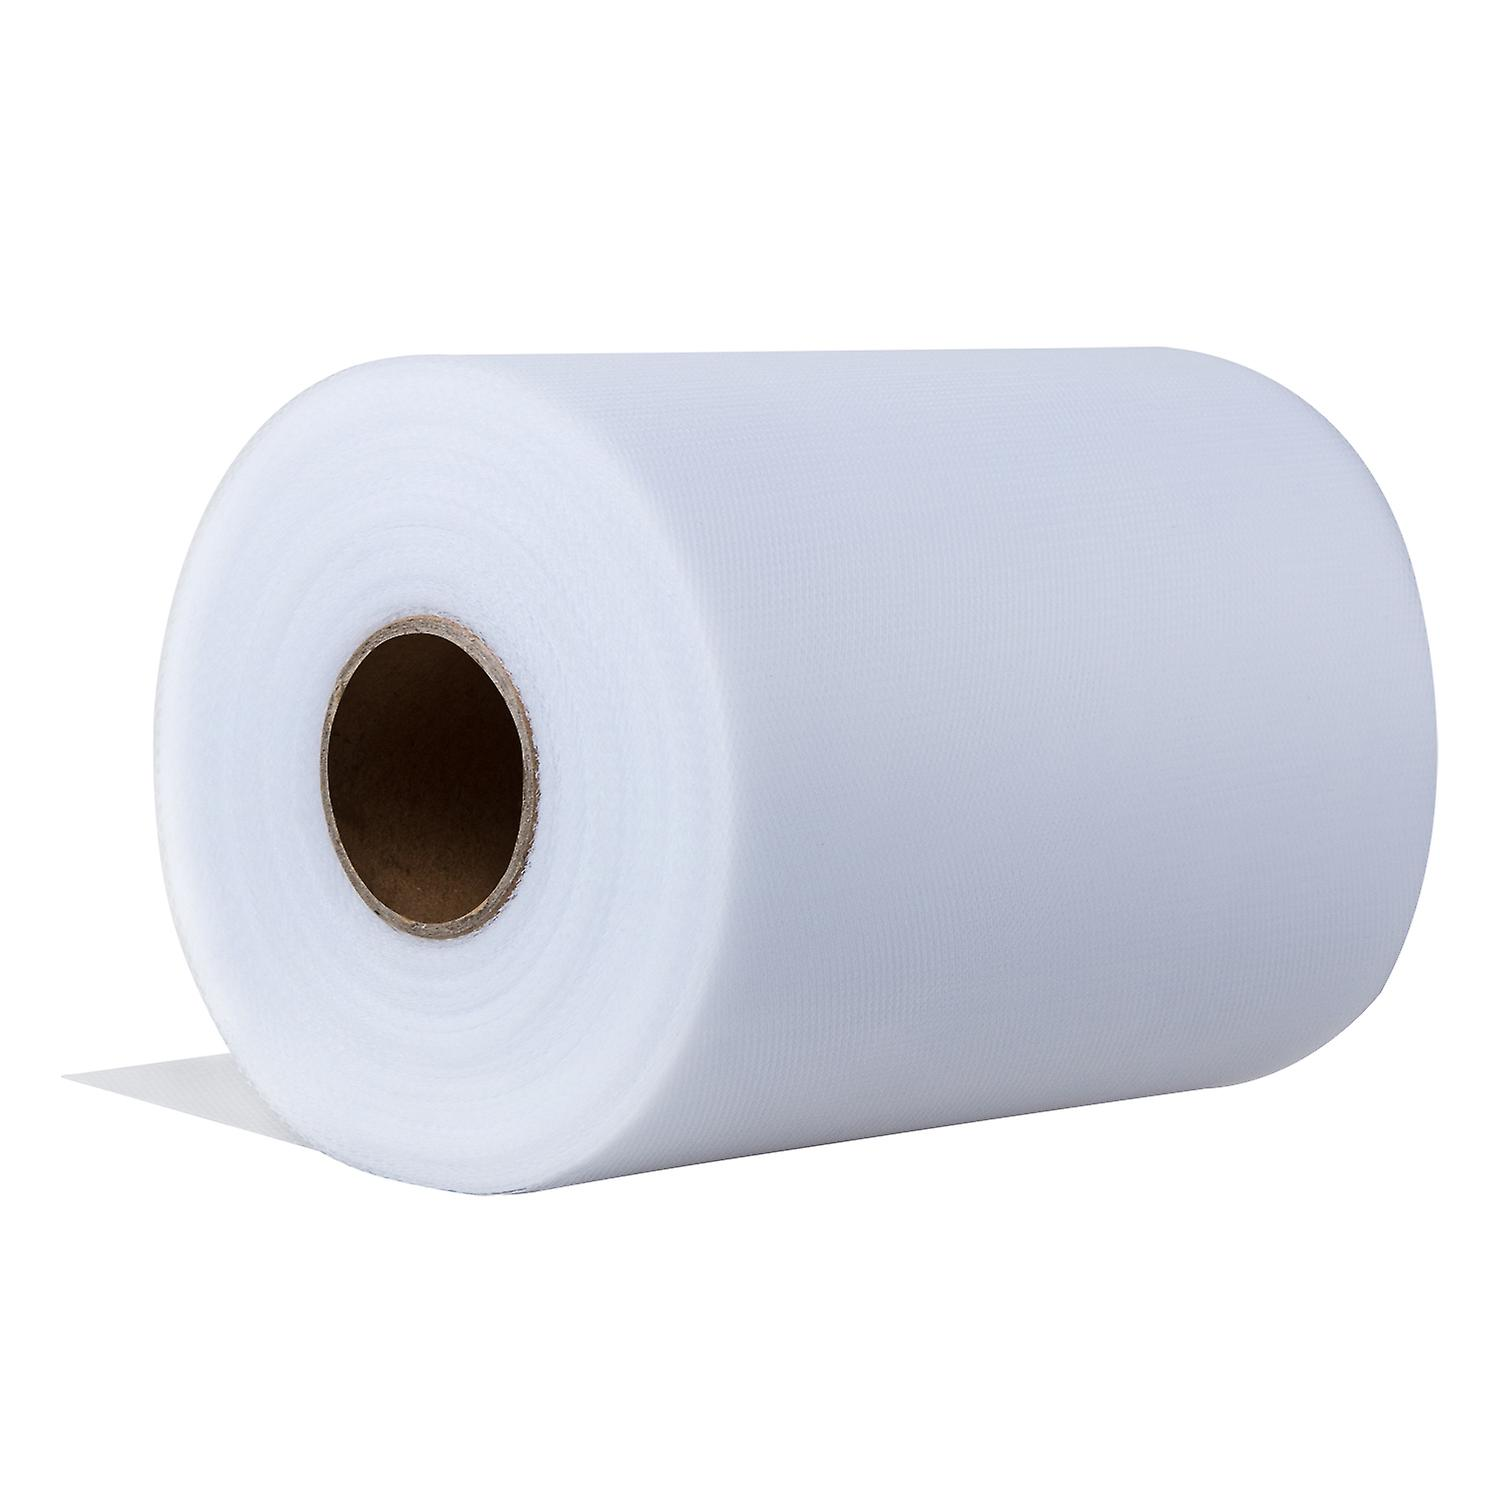 TRIXES White 6 x 100yd Fabric Tulle Roll Wedding Decoration Netting Bridal Bow Craft